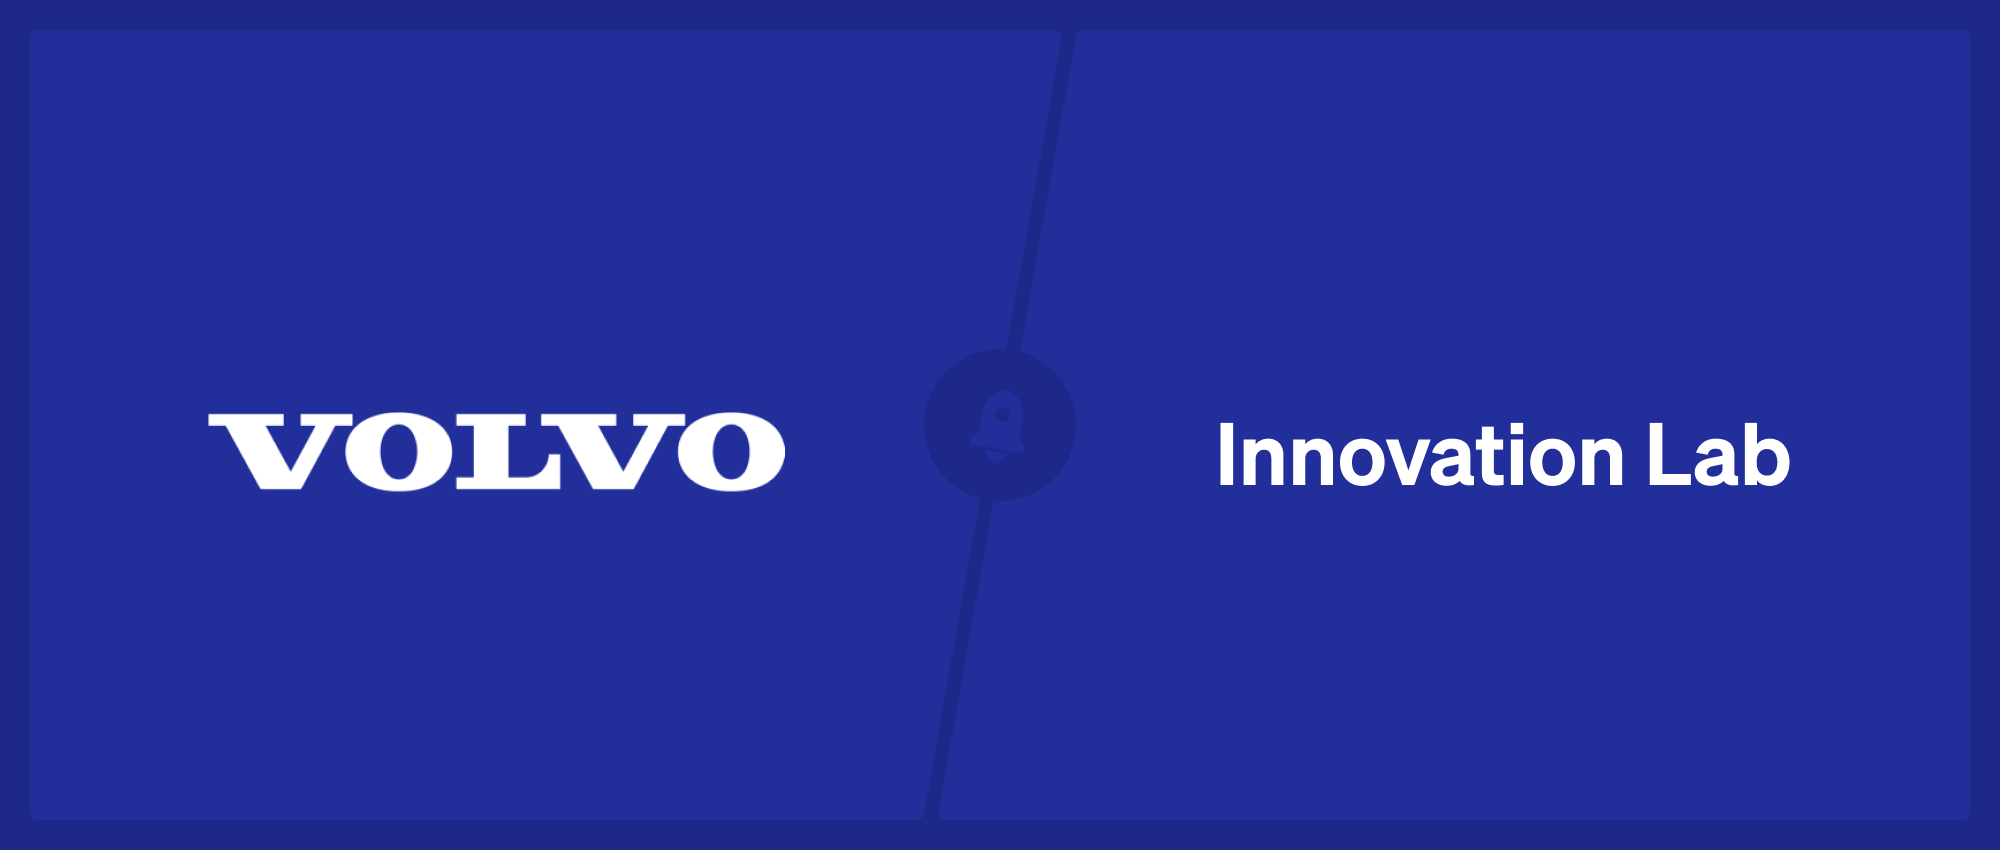 Volvo's Innovation Lab: Driving mobility innovation through collaboration